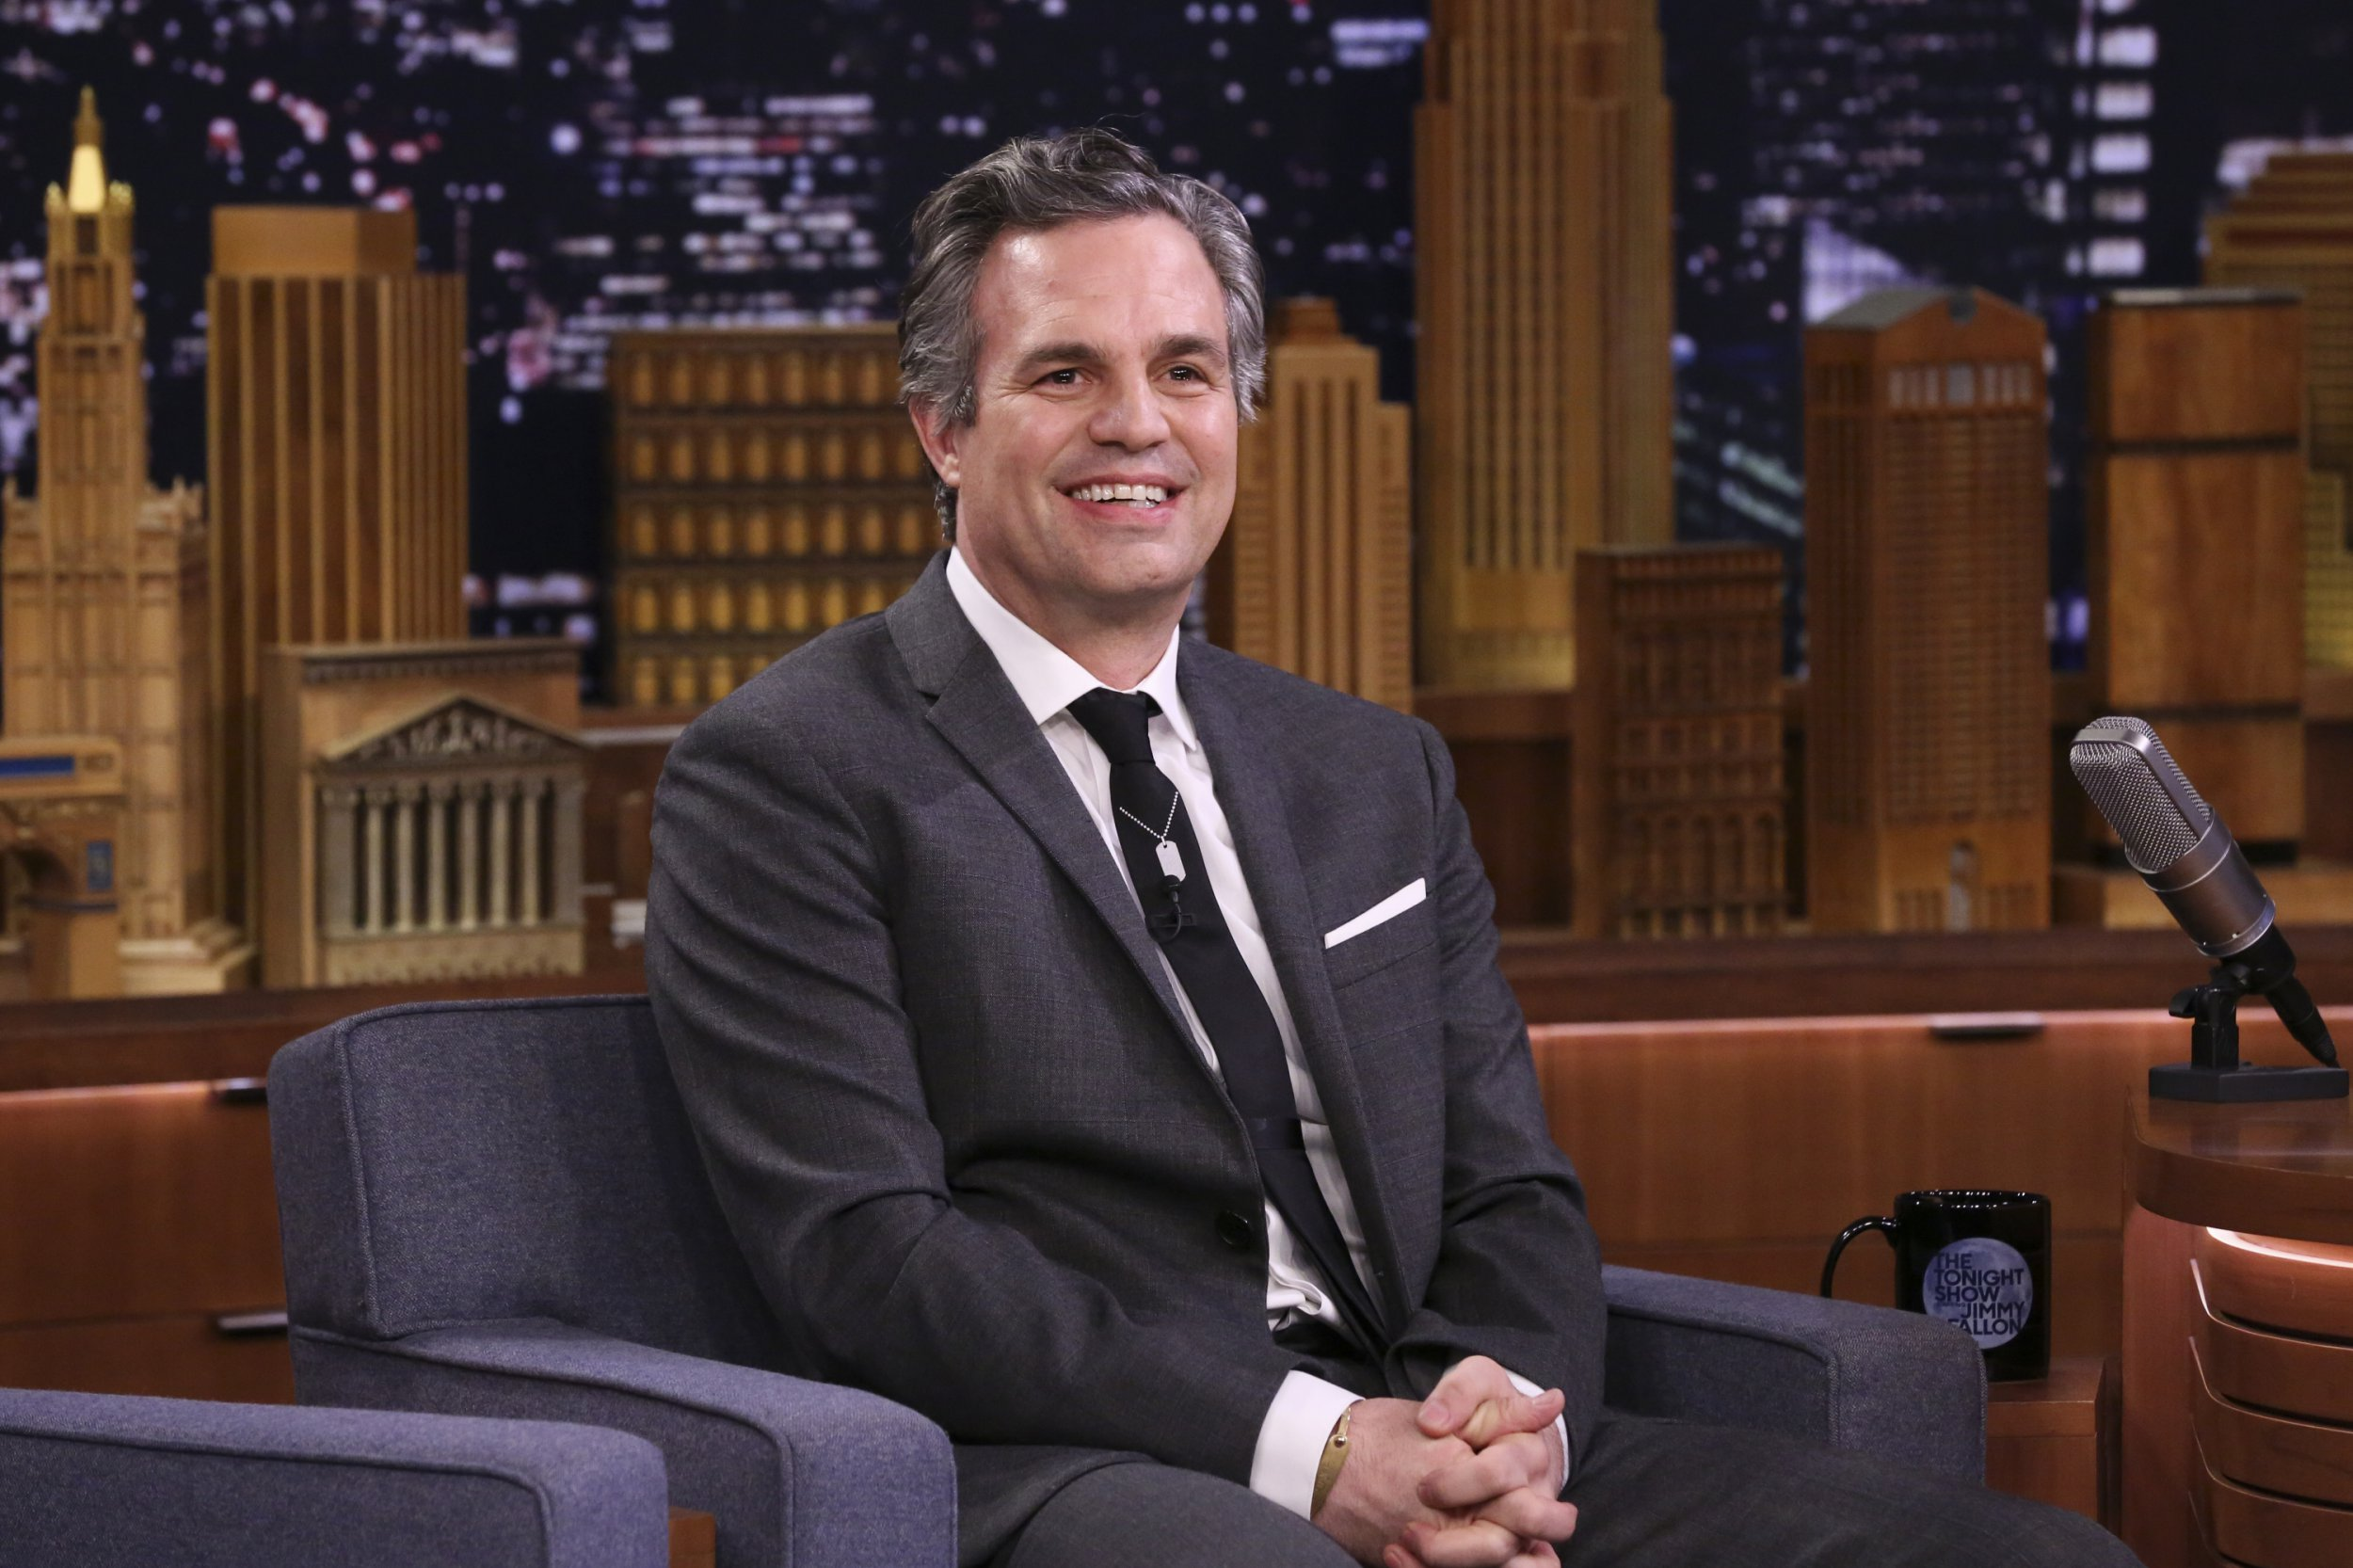 THE TONIGHT SHOW STARRING JIMMY FALLON -- Episode 1029 -- Pictured: Actor Mark Ruffalo during an talk on Mar 13, 2019 -- (Photo by: Andrew Lipovsky/NBC/NBCU Photo Bank around Getty Images)